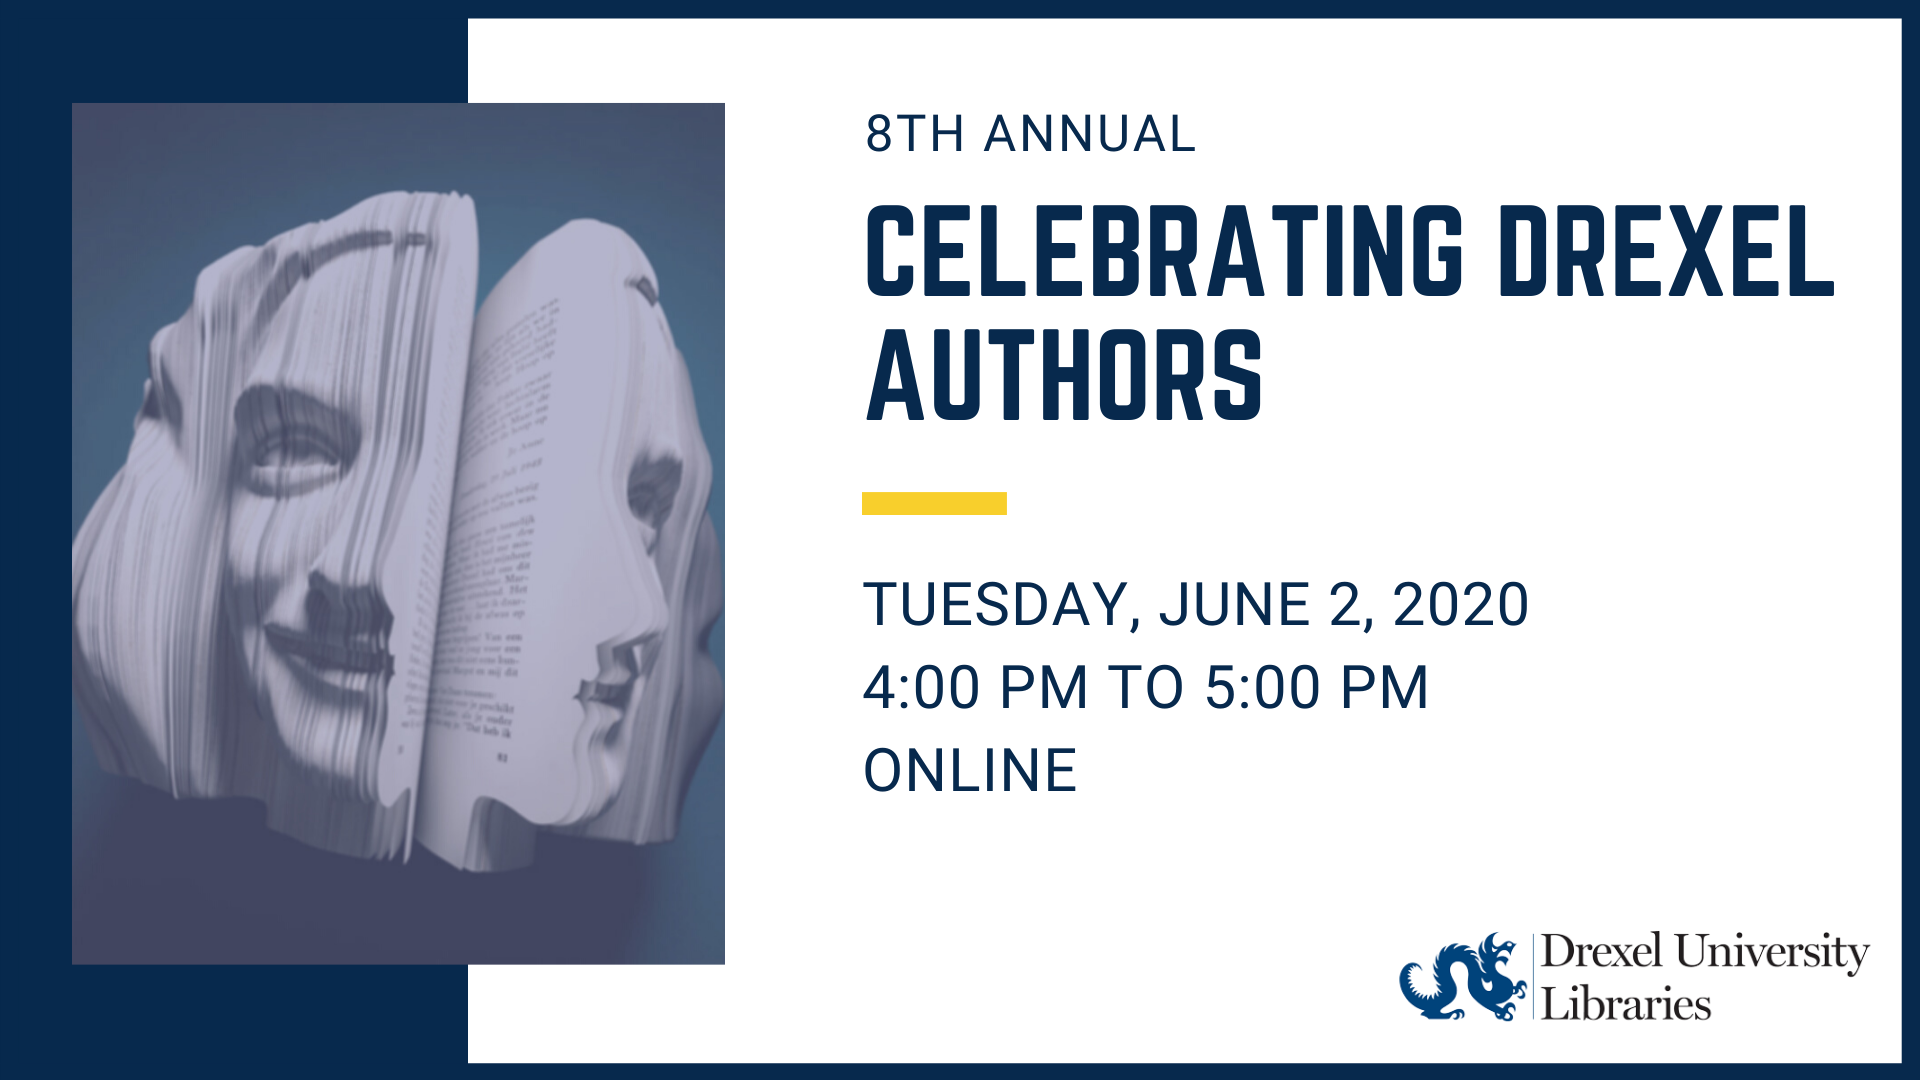 Celebrating Drexel Authors - Online Event